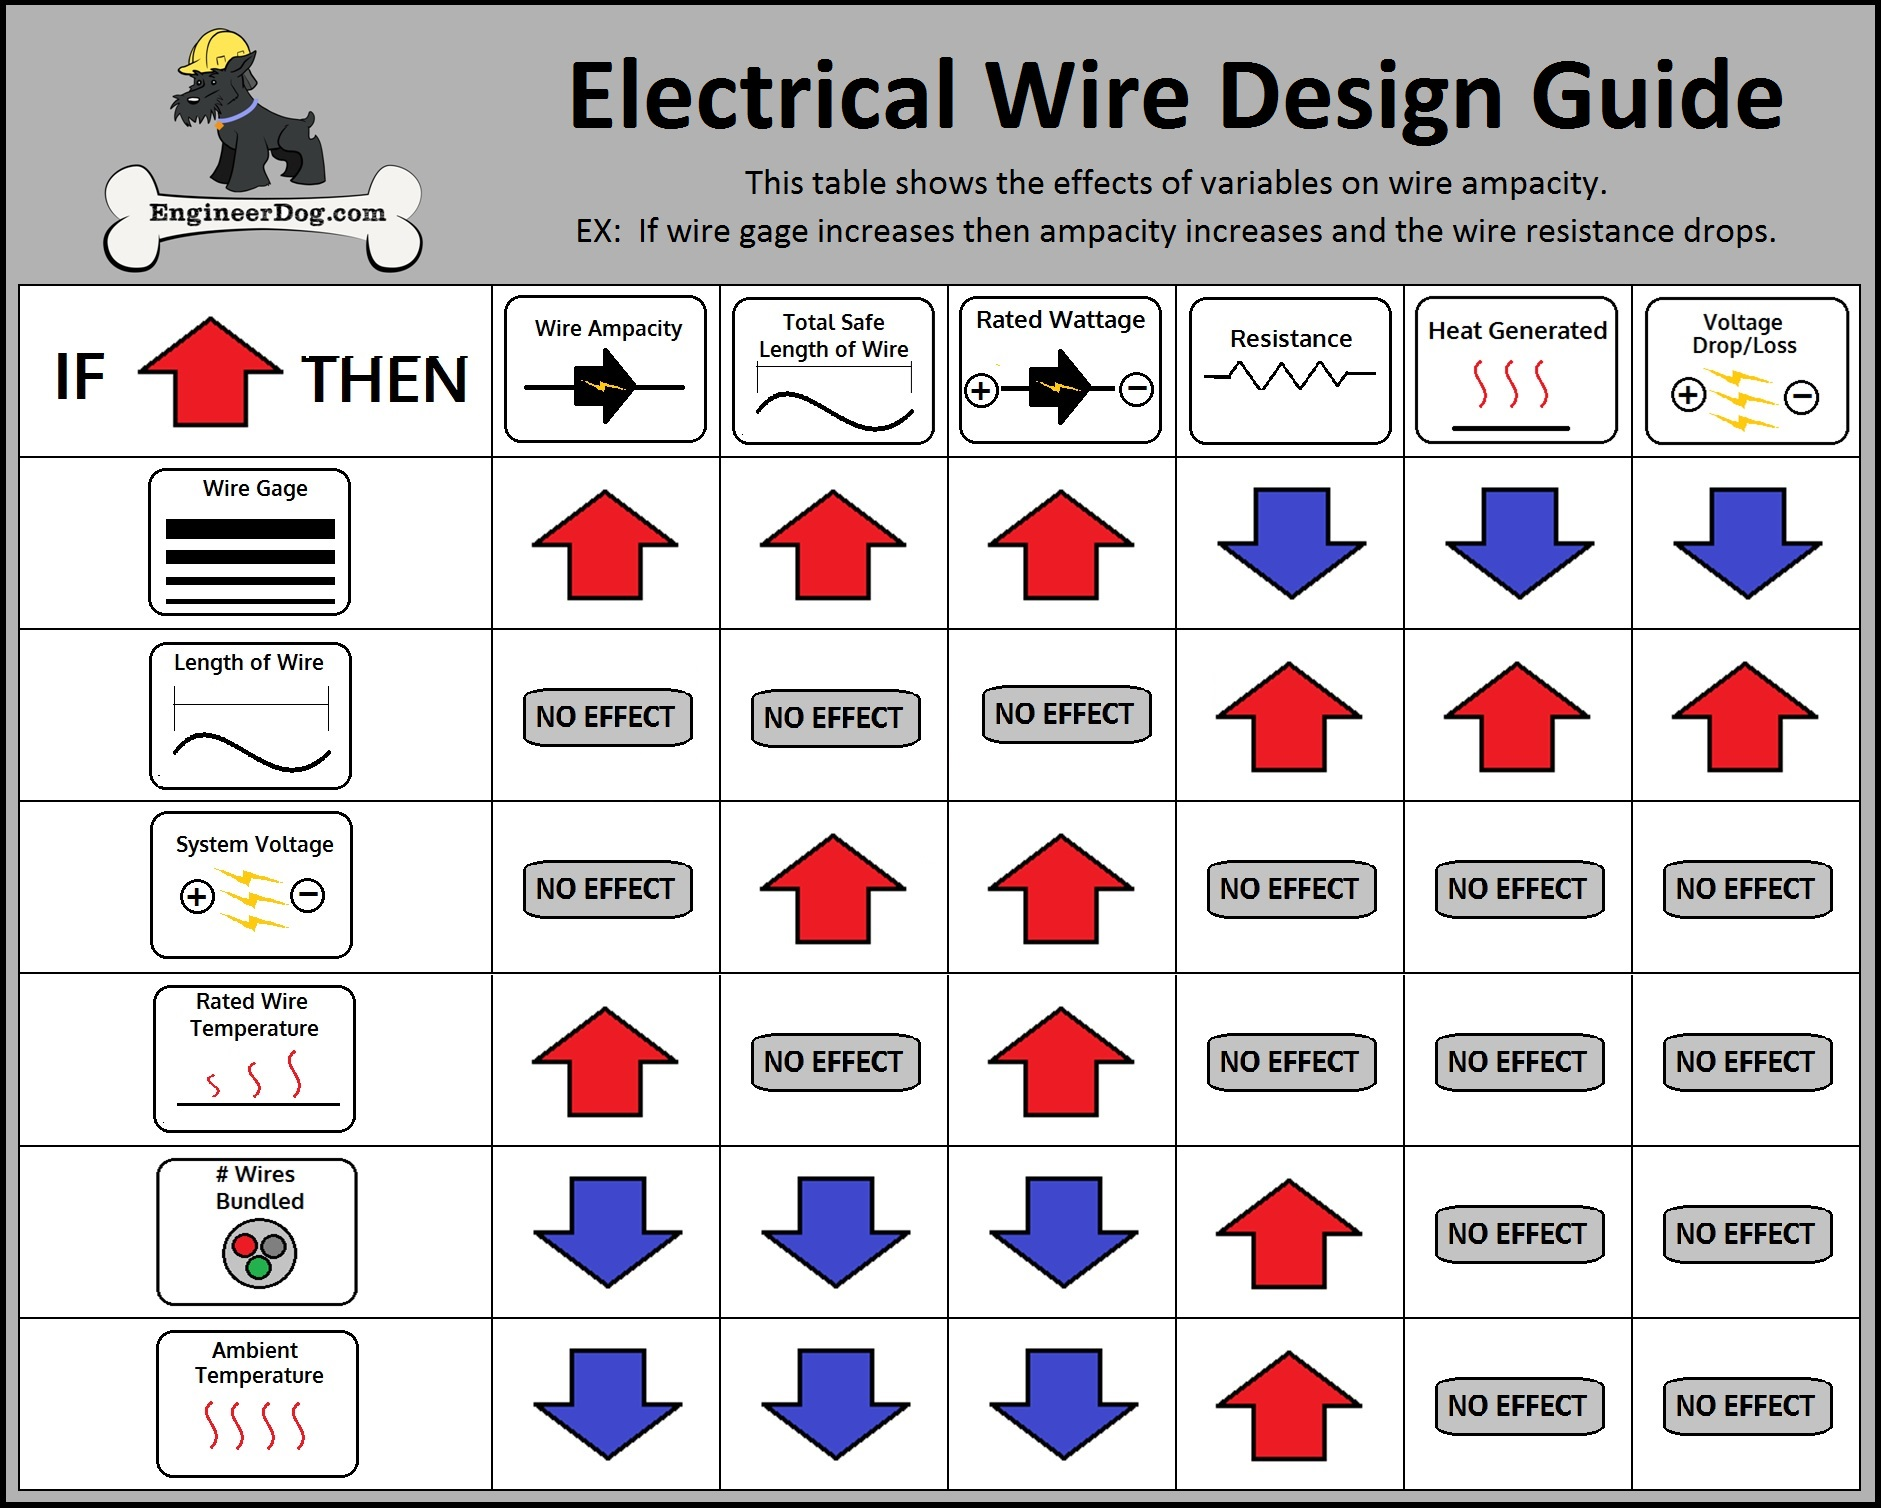 Awesome 200 amp wire size chart elaboration wiring diagram ideas electric motor wire size calculator wiring keyboard keysfo Image collections